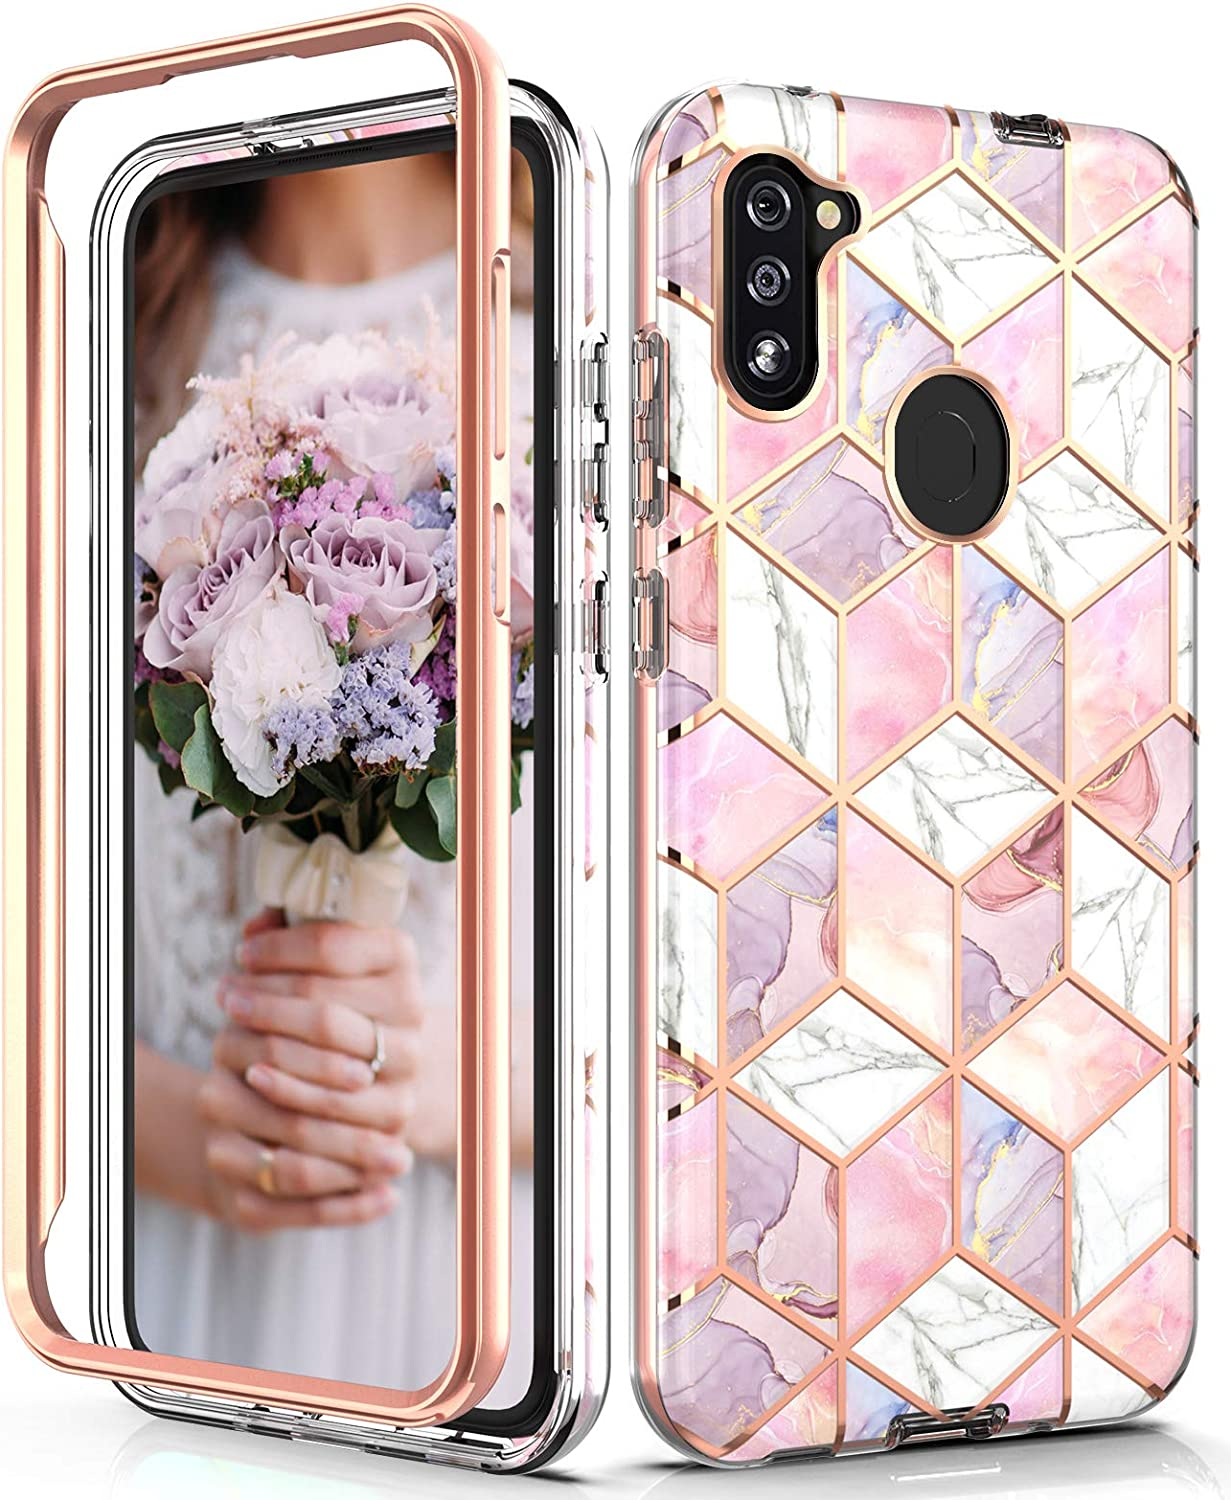 Hasaky Case for Samsung Galaxy A11 Case,Dual Layer Hybrid Bumper Clear Cute Girls Rose Gold Marble Design Soft TPU+Hard Back Heavy Duty Anti-Scratch Shockproof Protective Phone Case - Pink/Rose Gold.